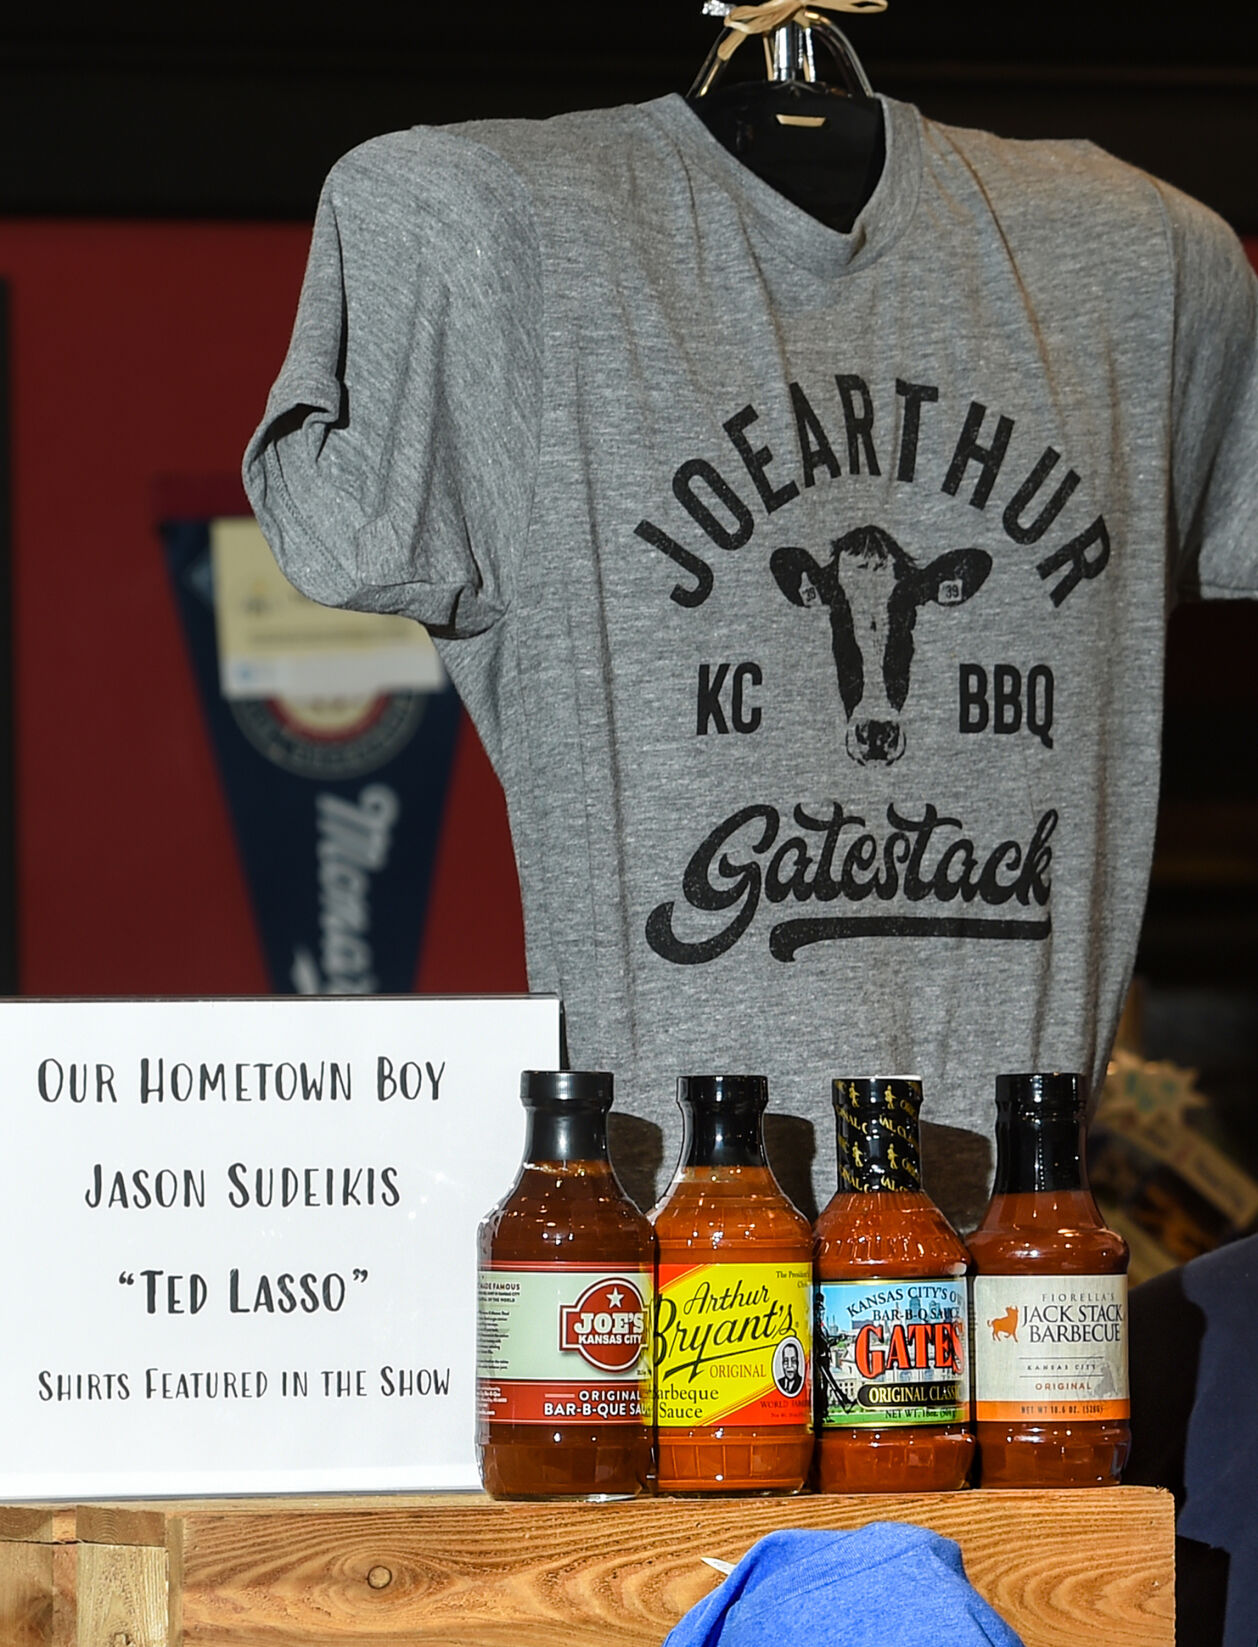 T-shirt and barbecue sauces